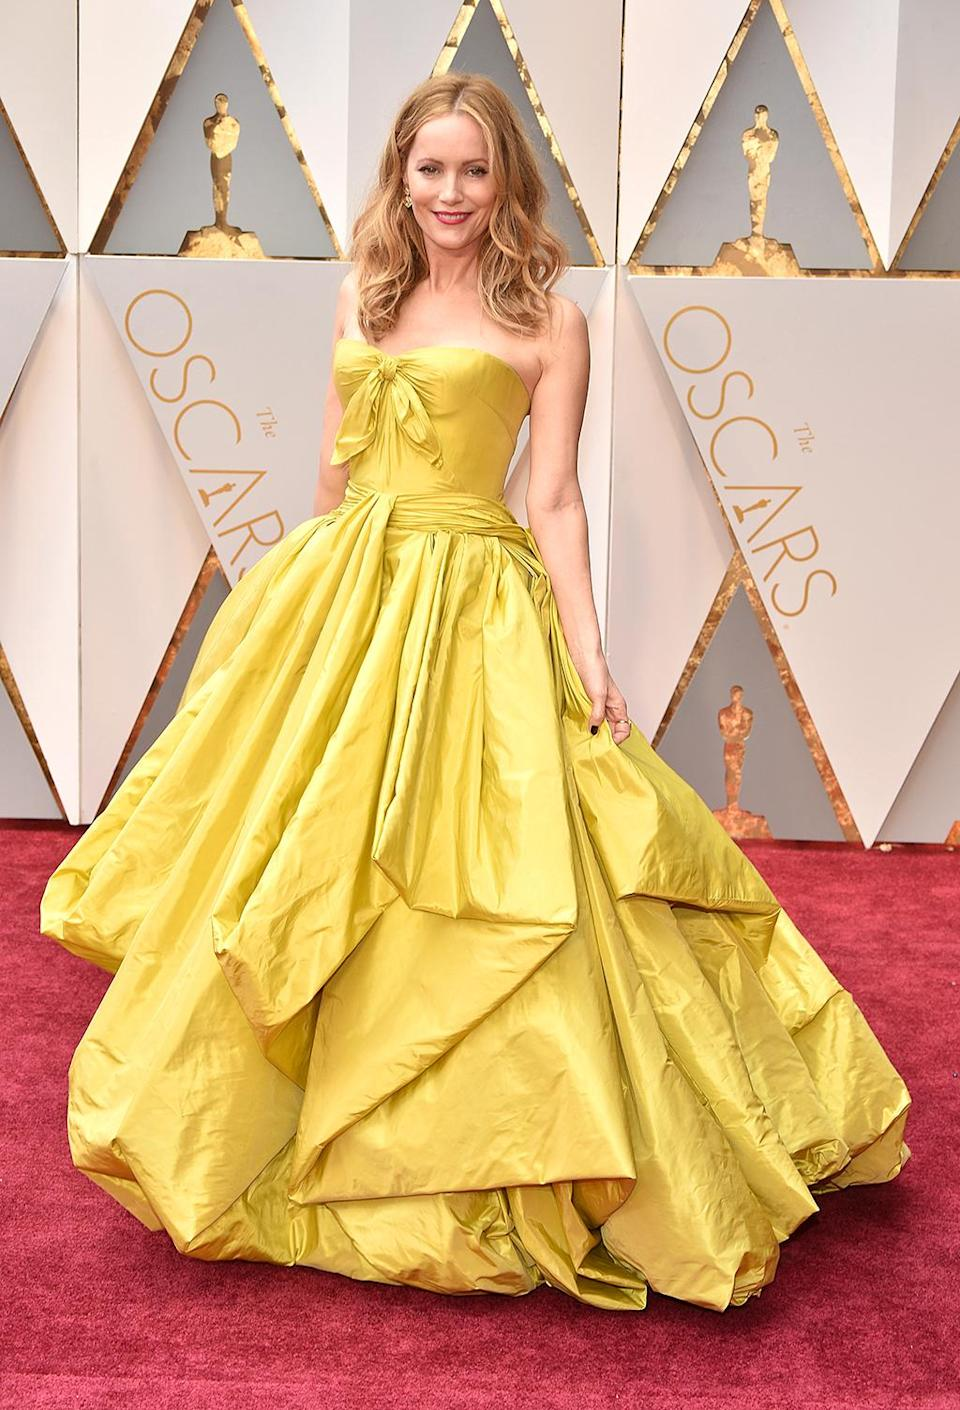 <p>Leslie Mann attends the 89th Annual Academy Awards at Hollywood & Highland Center on February 26, 2017 in Hollywood, California. (Photo by Kevin Mazur/Getty Images) </p>